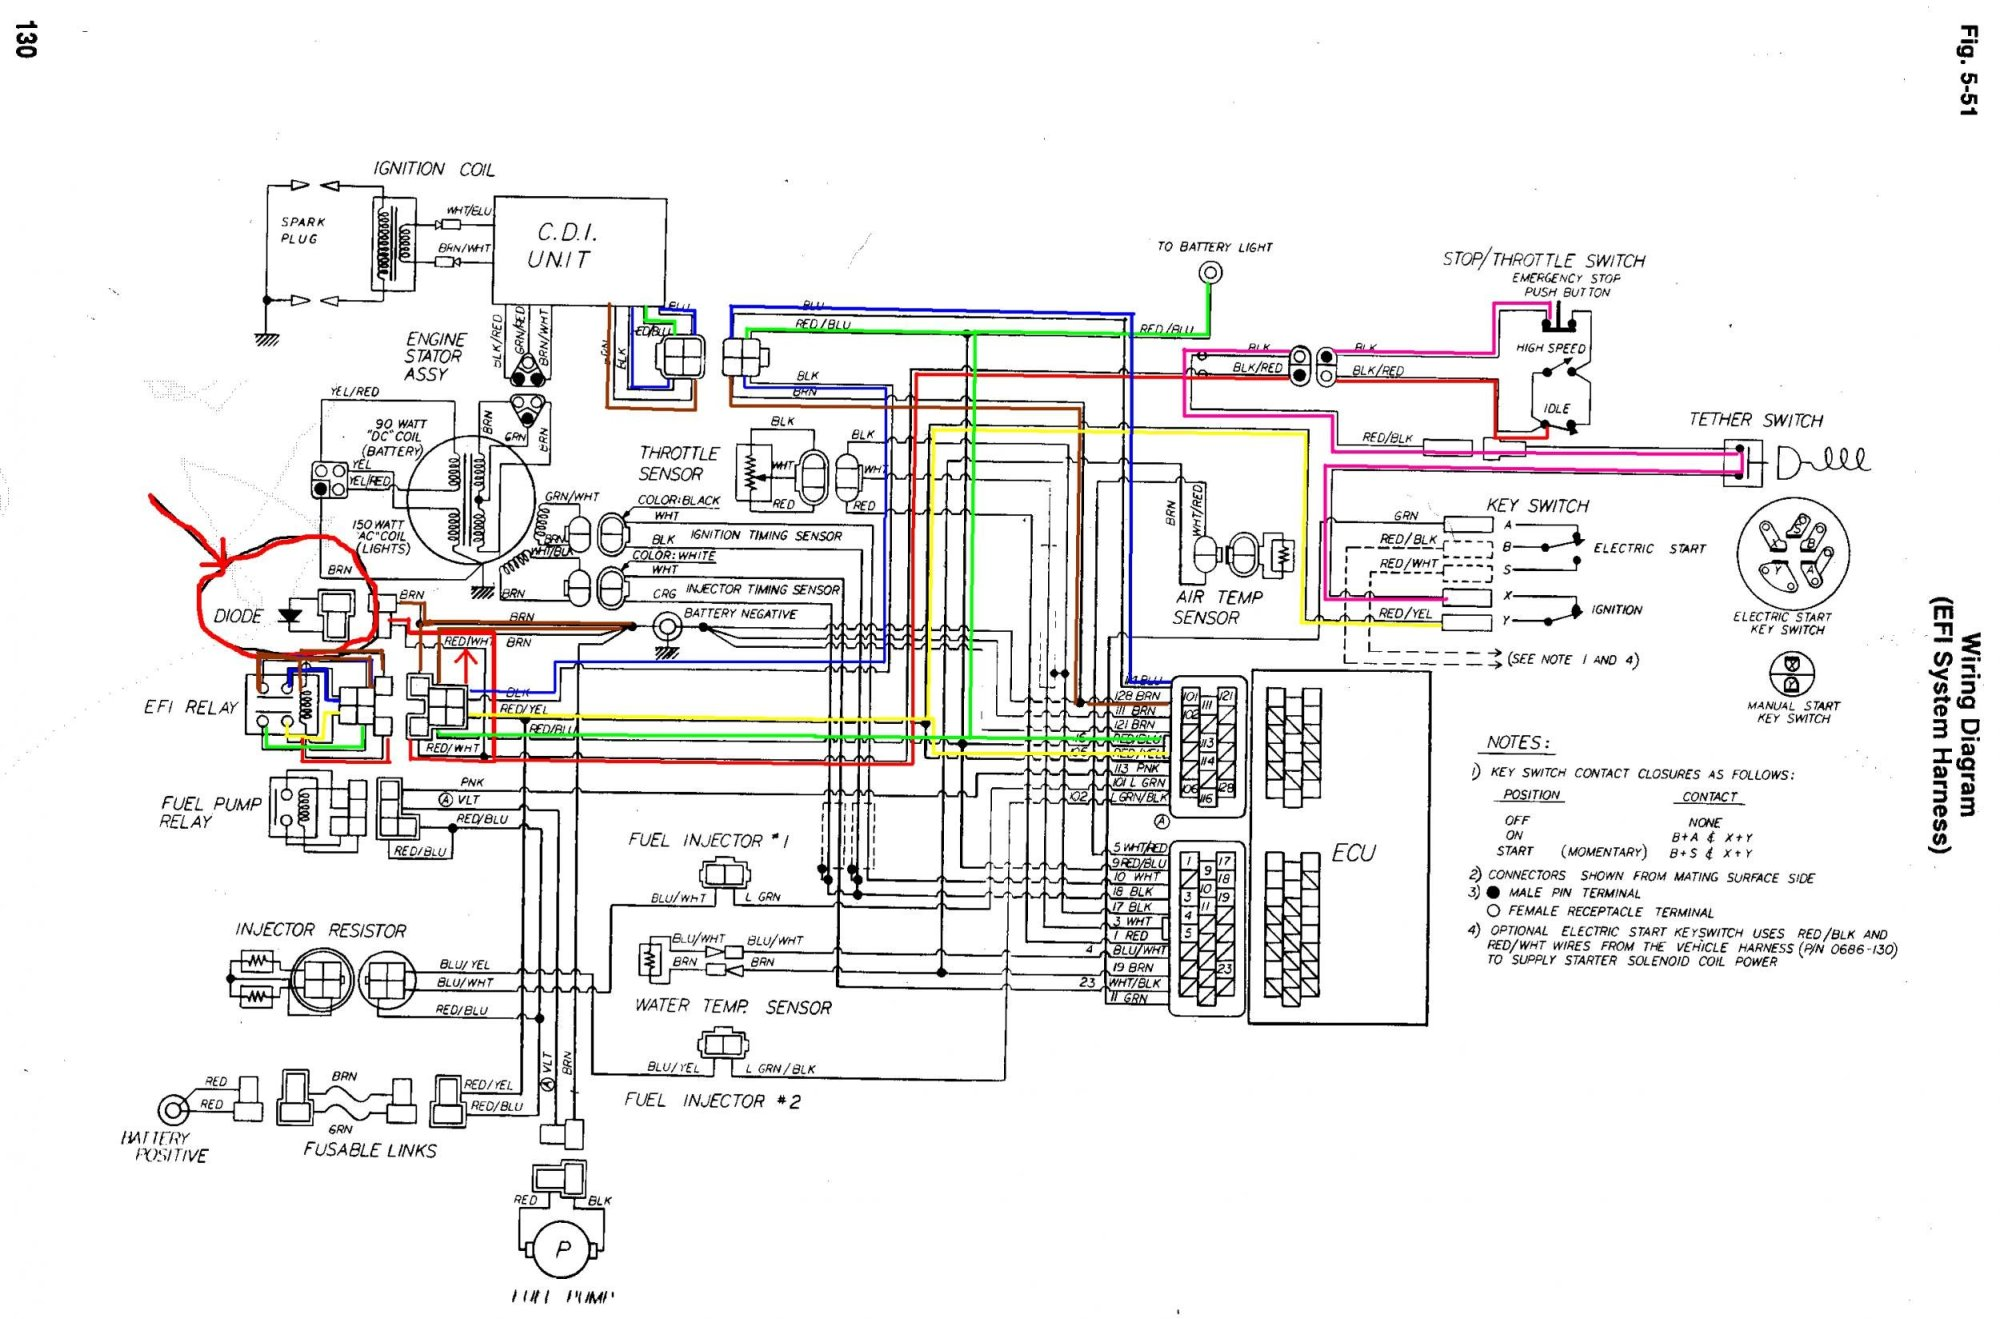 hight resolution of wiring diagram for suzuki quadrunner wiring diagram papersuzuki quadrunner wiring diagram wiring diagram paper wiring diagram